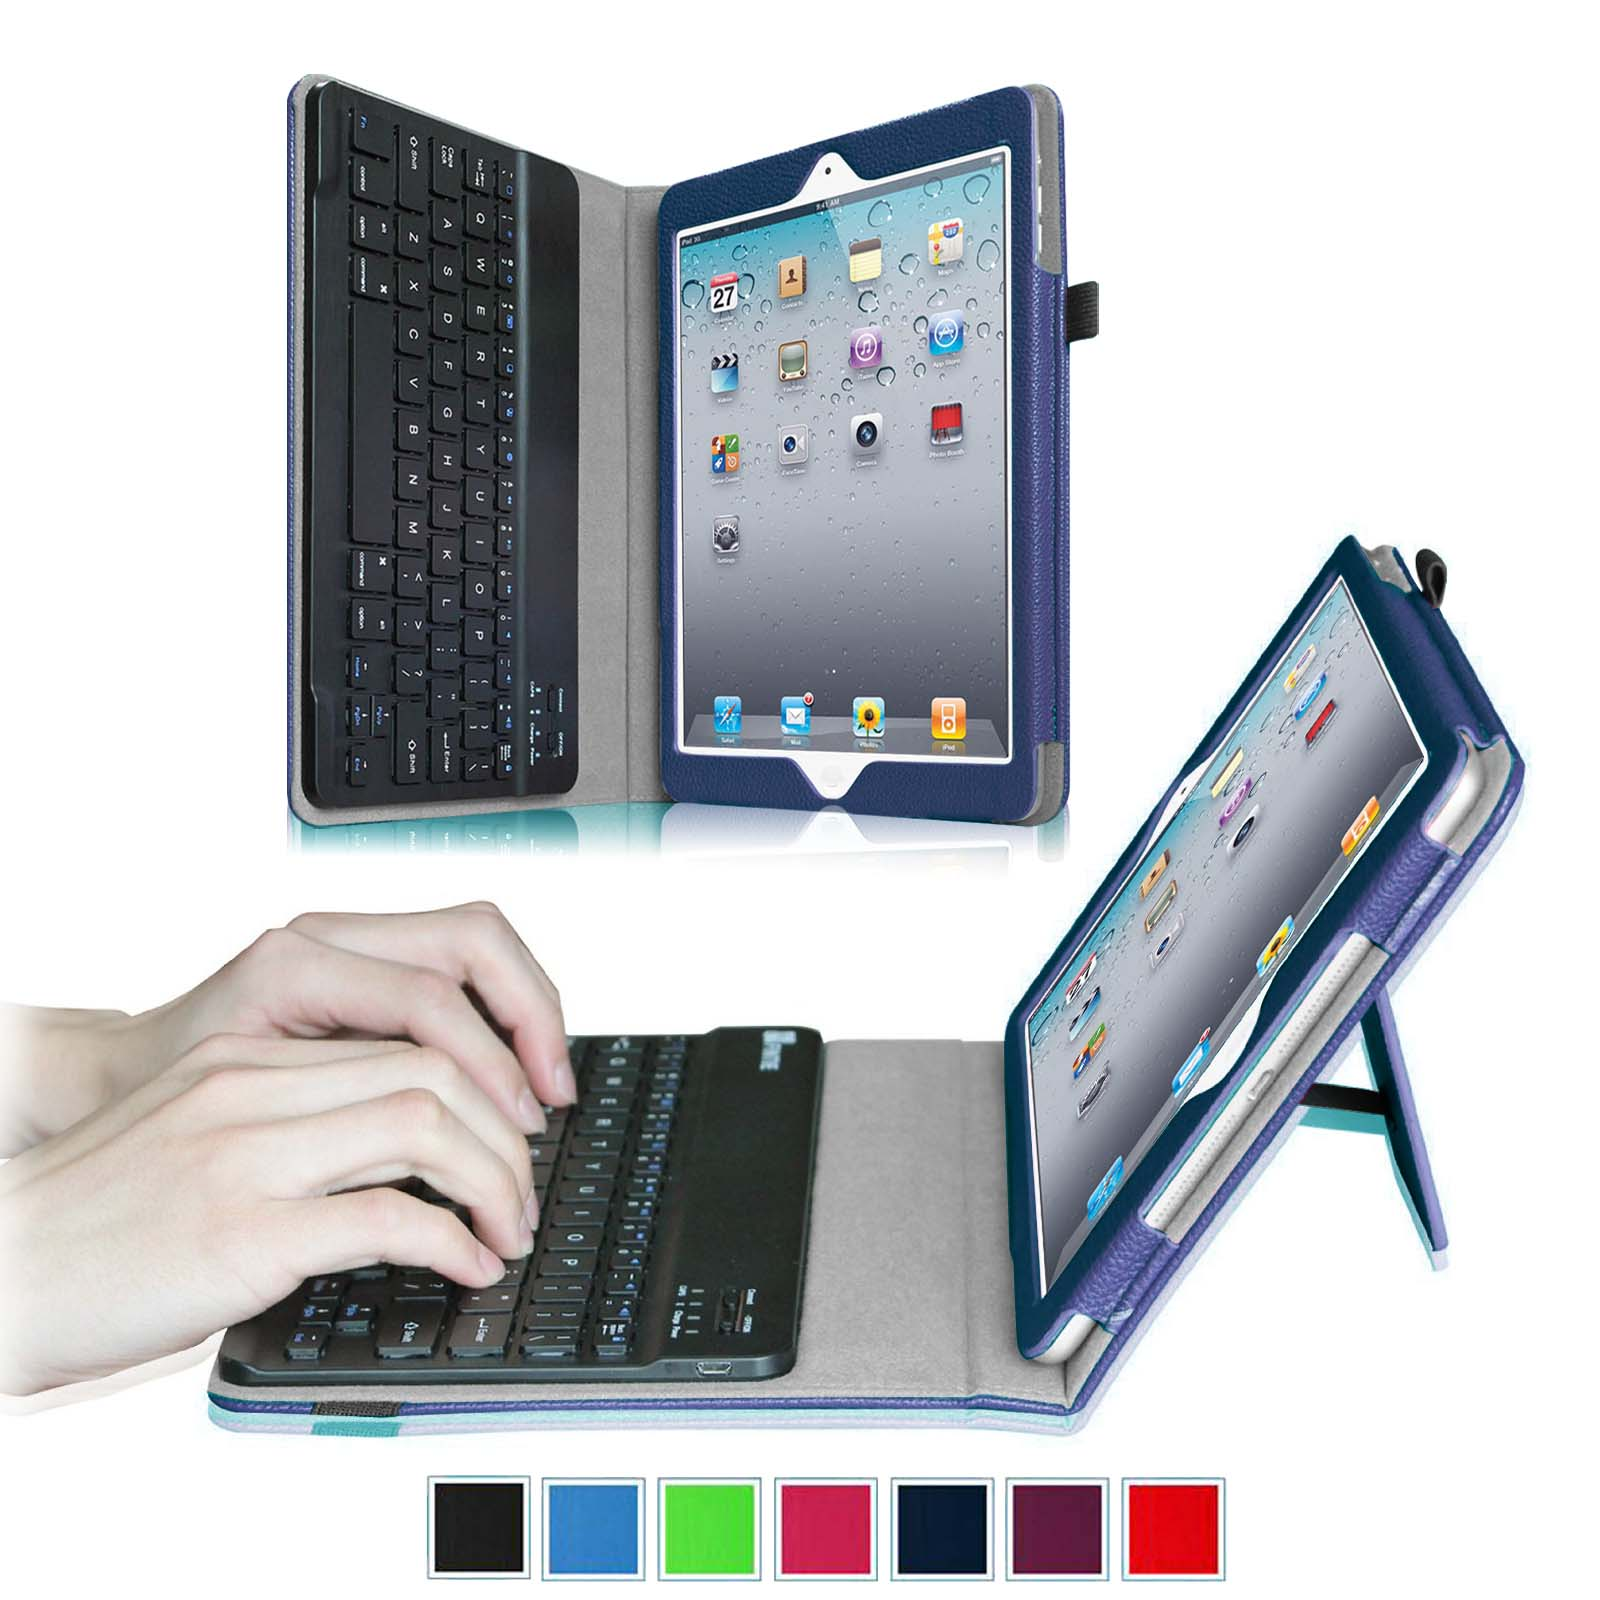 Apple iPad 4, iPad 3 & iPad 2 Keyboard Case - Fintie Ultra Thin Folio Case With Removable Bluetooth Keyboard, Navy